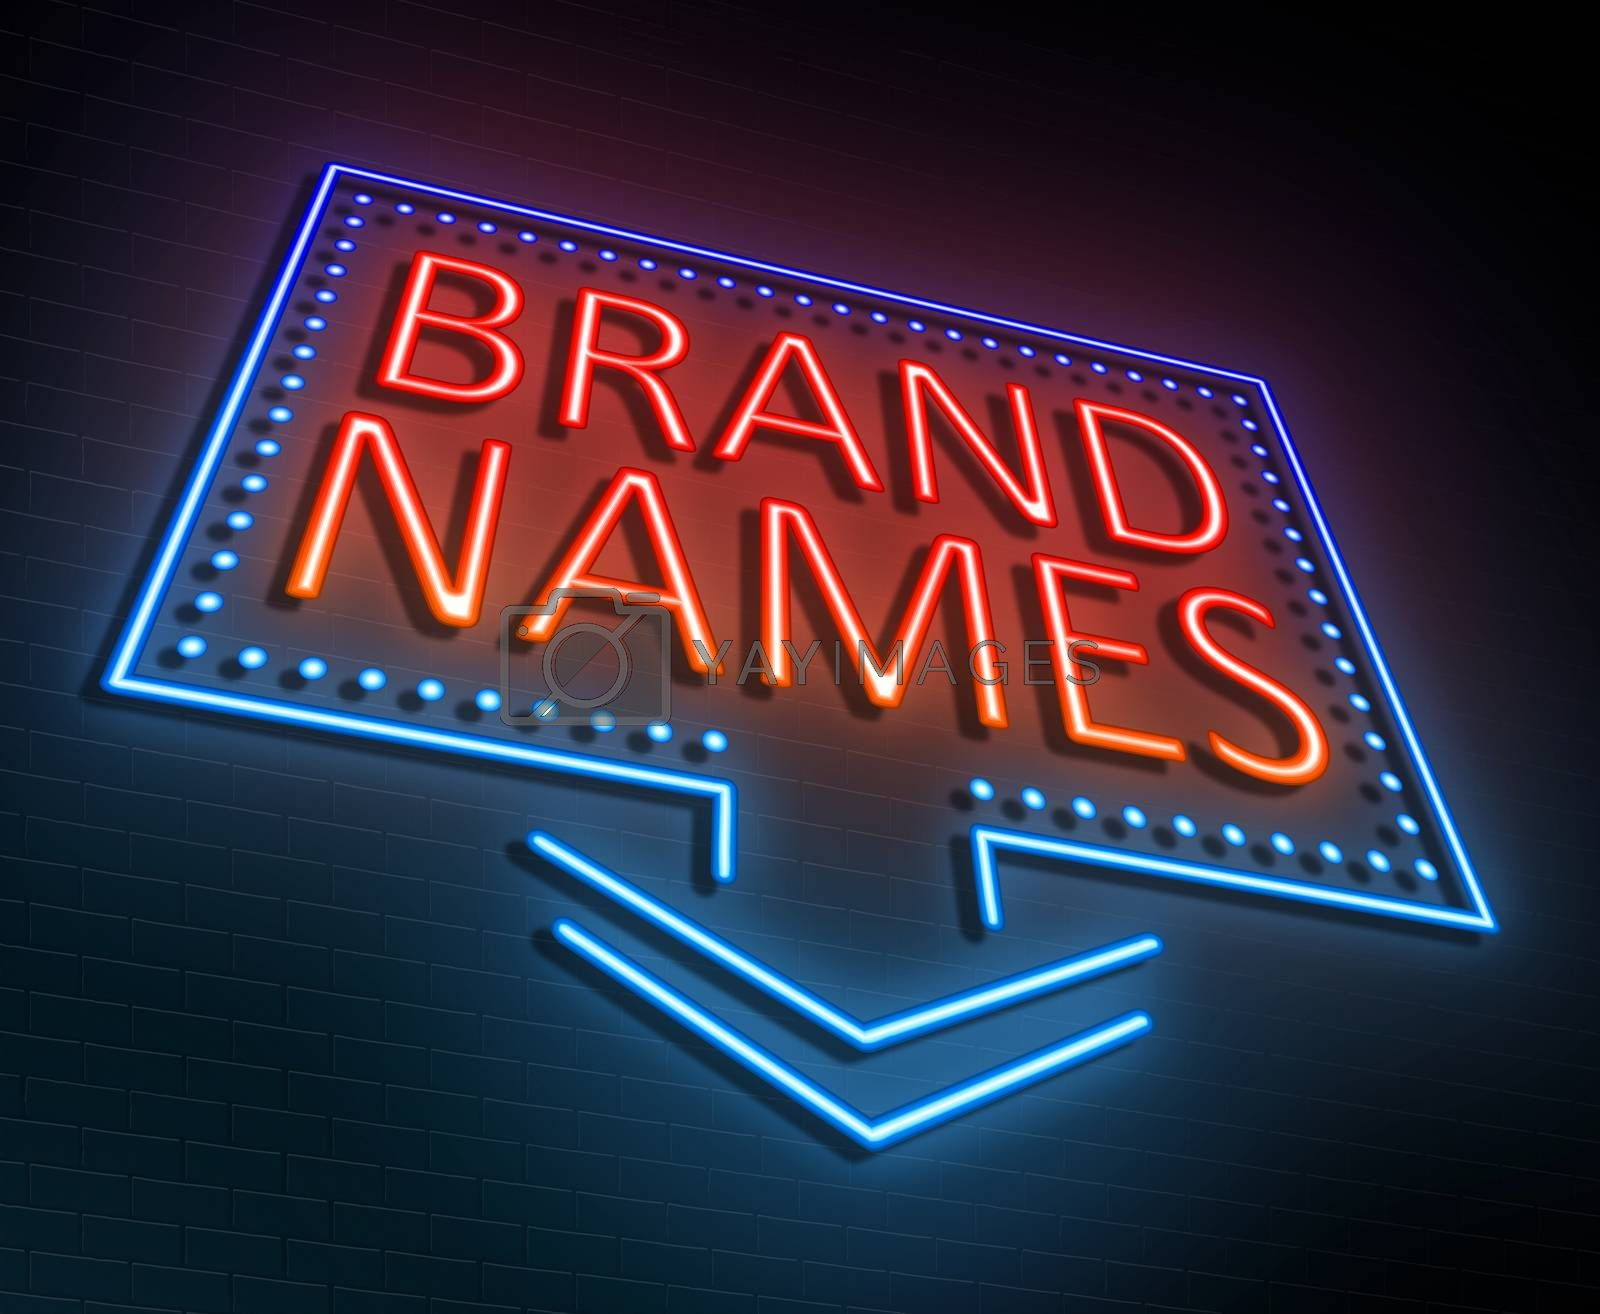 Illustration depicting an illuminated neon sign with a brand names concept.